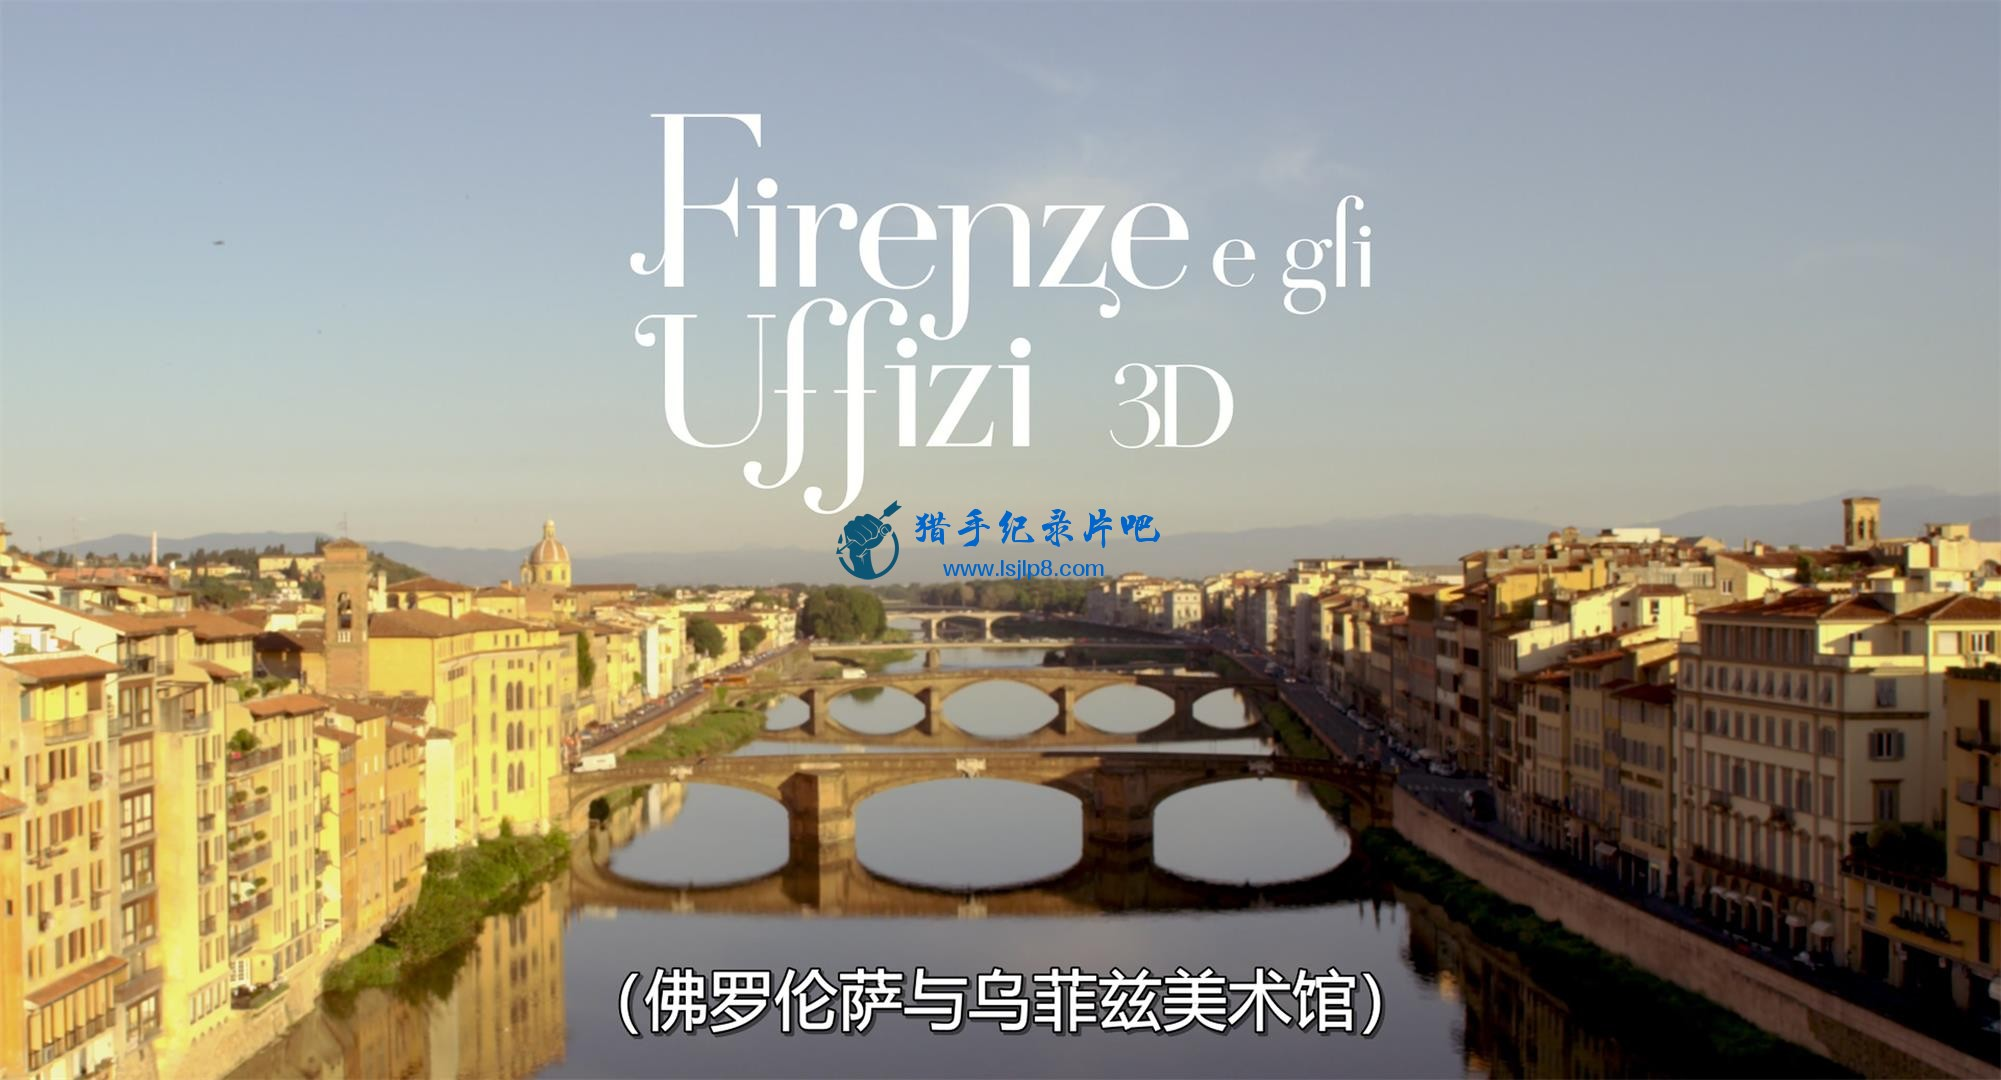 Florence and the Uffizi Gallery 2015 2160p UHD Blu-ray SDR DTS-HD MA 5.1.HEVC-DD.jpg